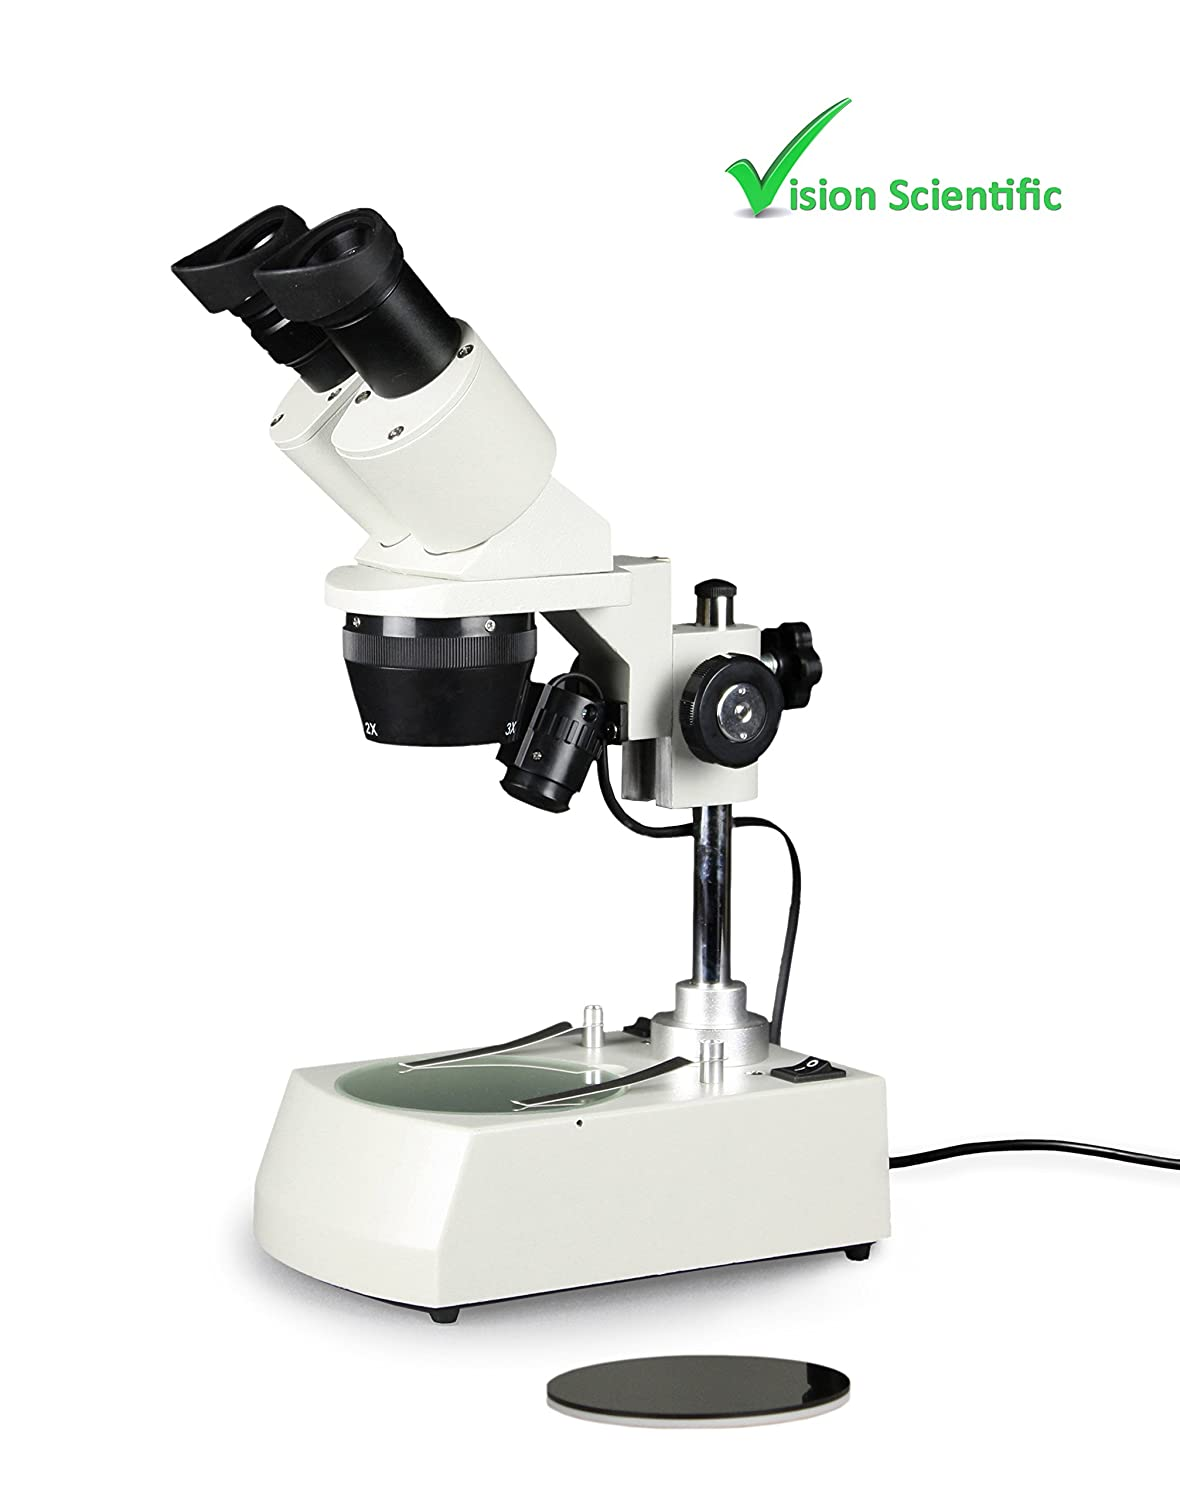 10X 20x Vision Scientific VMS0002-LD-123 Tri-Power Binocular Stereo Microscope Top and Bottom LED Illumination Post-Mounted Stand Paired 10X WF Eyepiece 1X,2X,3X Objective 30X Magnification